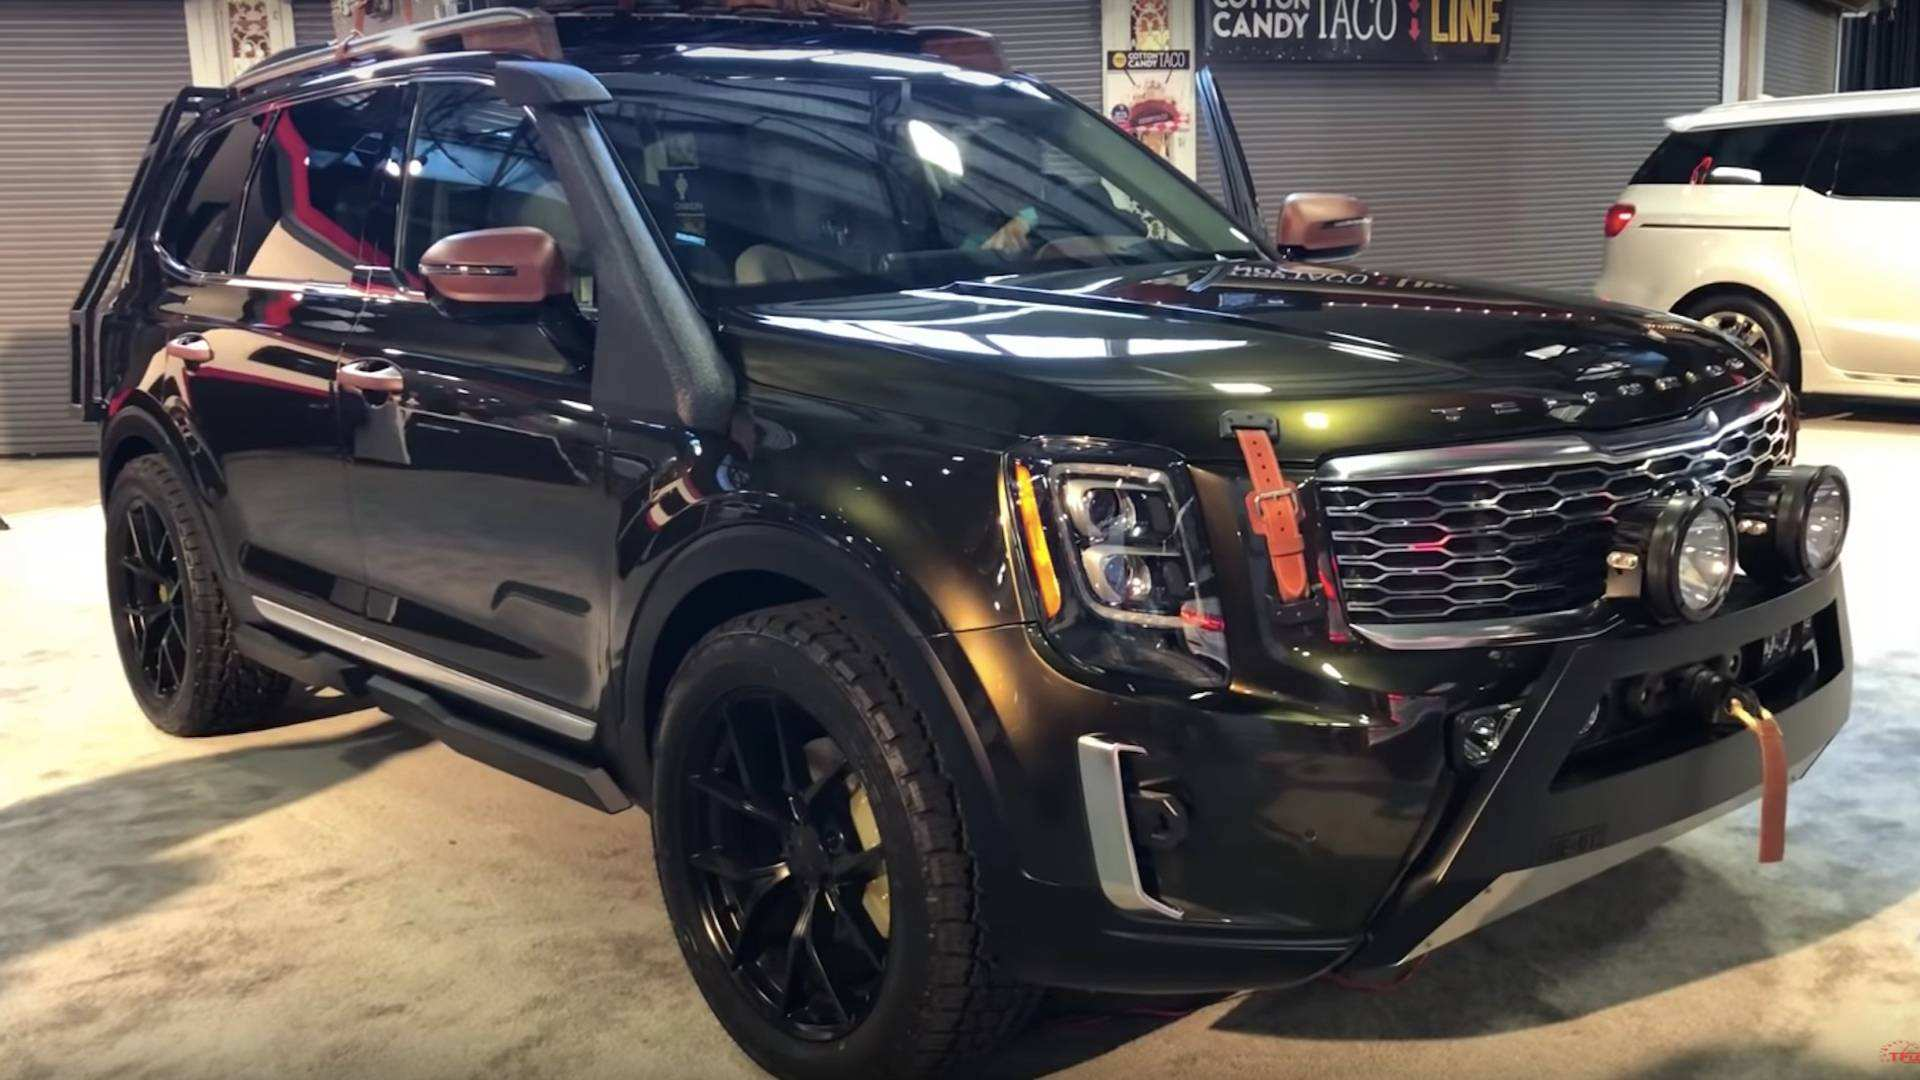 21 Best Review 2020 Kia Telluride Video Price for 2020 Kia Telluride Video